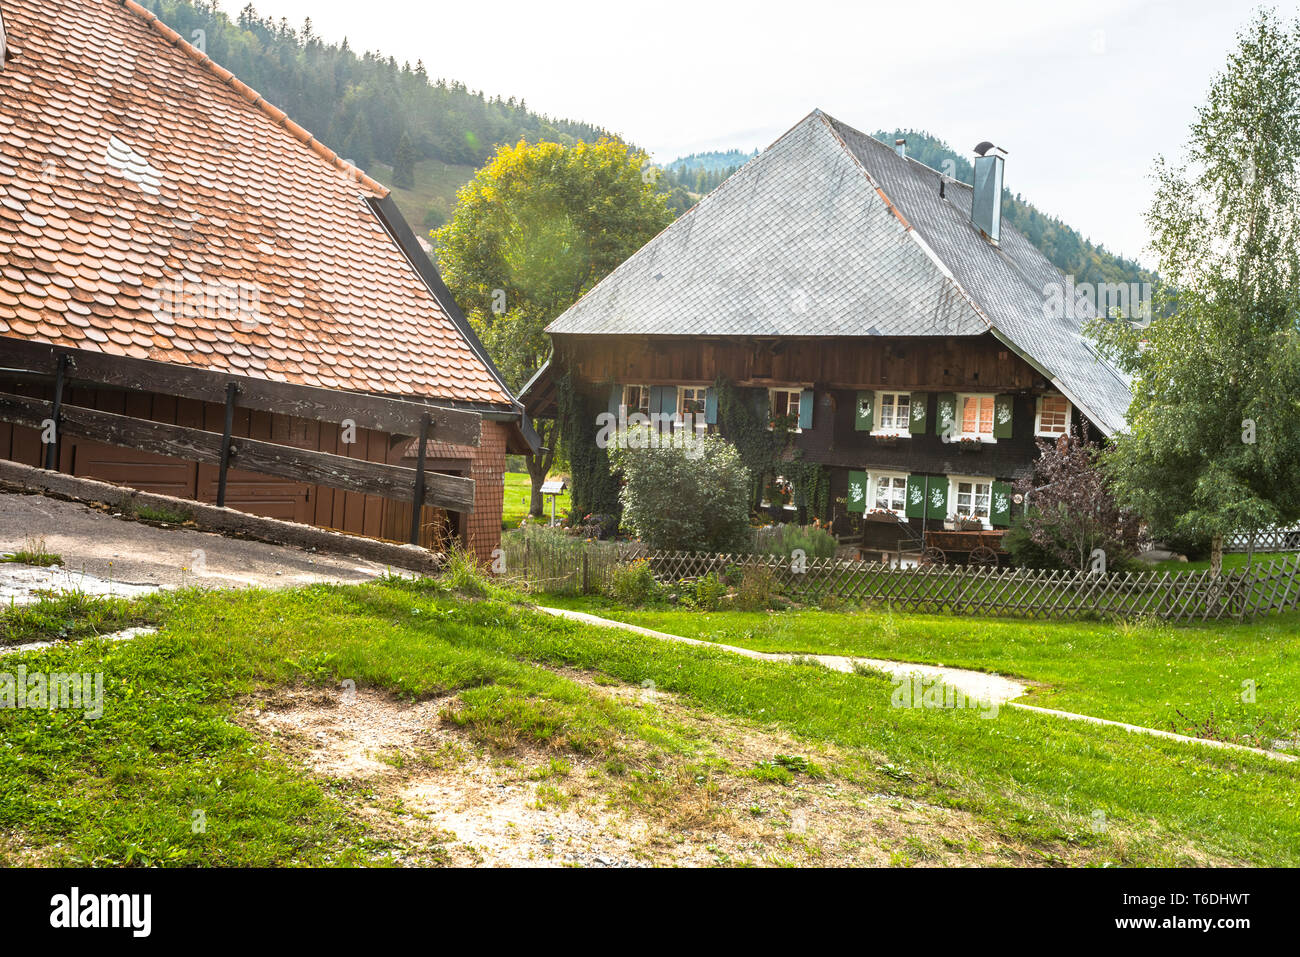 typical Black Forest house with hipped roof and landscape, village Menzenschwand, Germany, traditional architecture of the High Black Forest Stock Photo